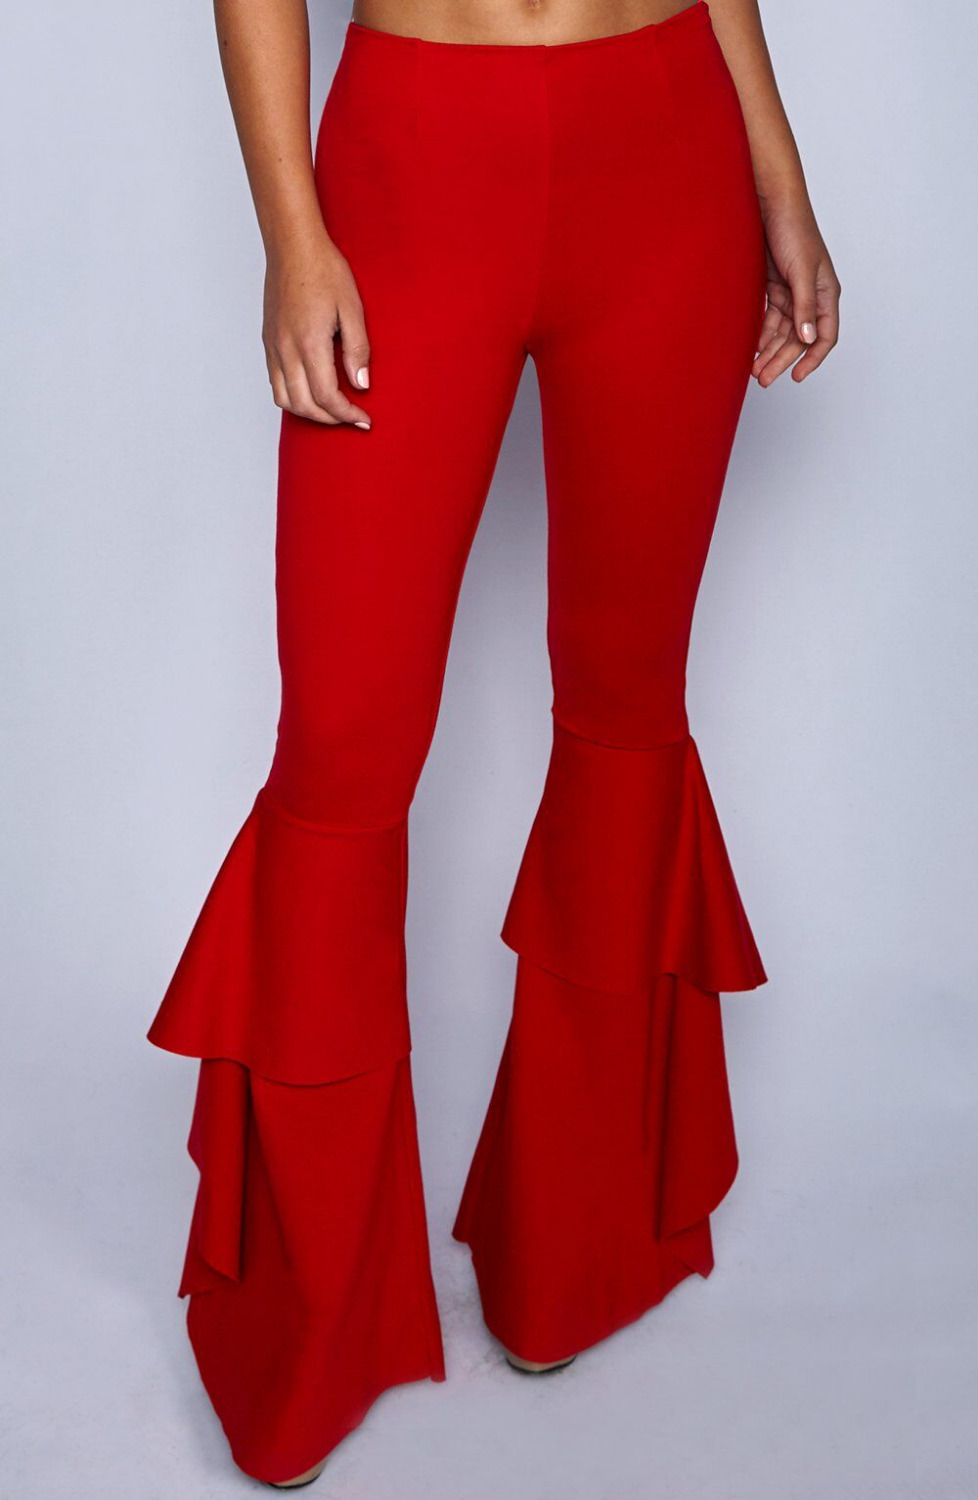 Hippie Women Enthusiastic Red Ruffles Slim Flare Pants Elastic Bottom 2018 Fashion Summer New Wide Leg Trouser Elegant Clothing in Pants amp Capris from Women 39 s Clothing